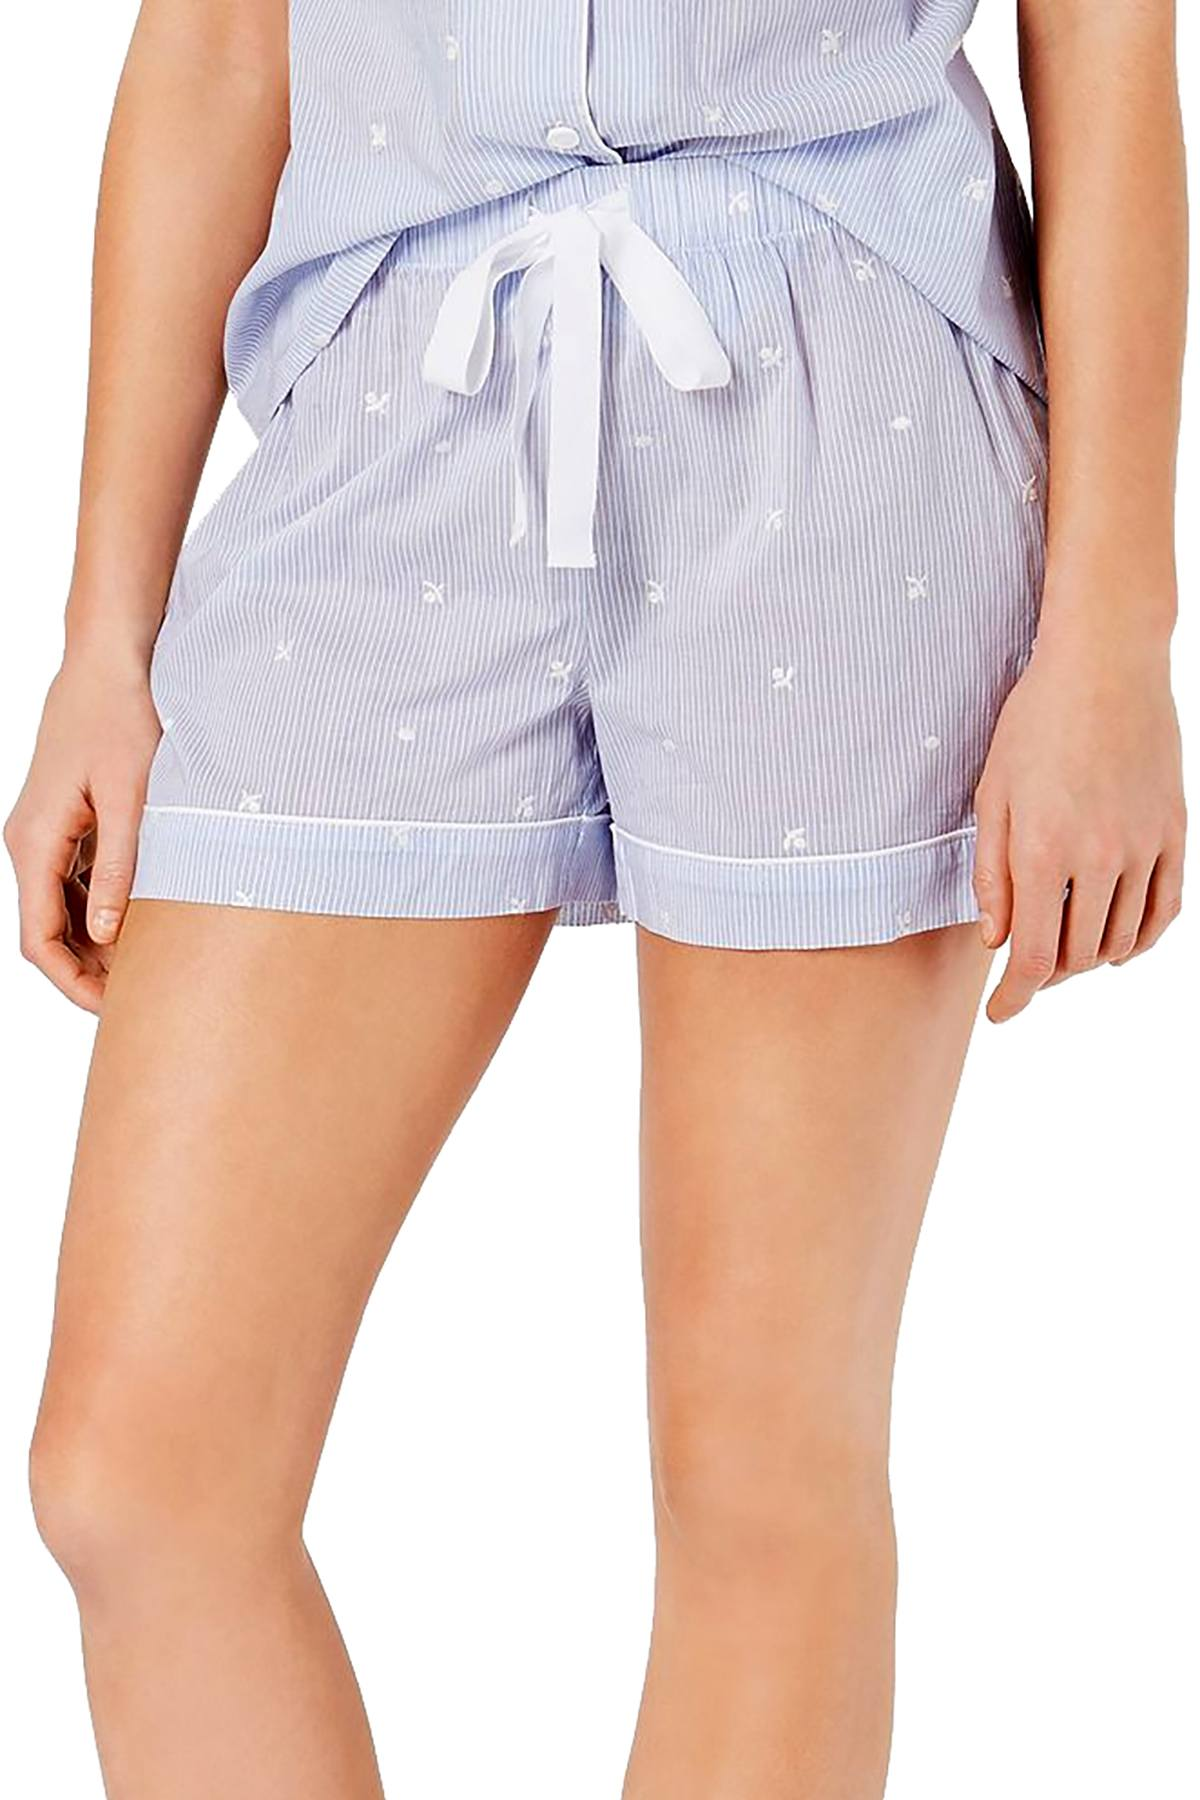 Charter Club Cotton Pajama Shorts in Embroidery Stripe Blue